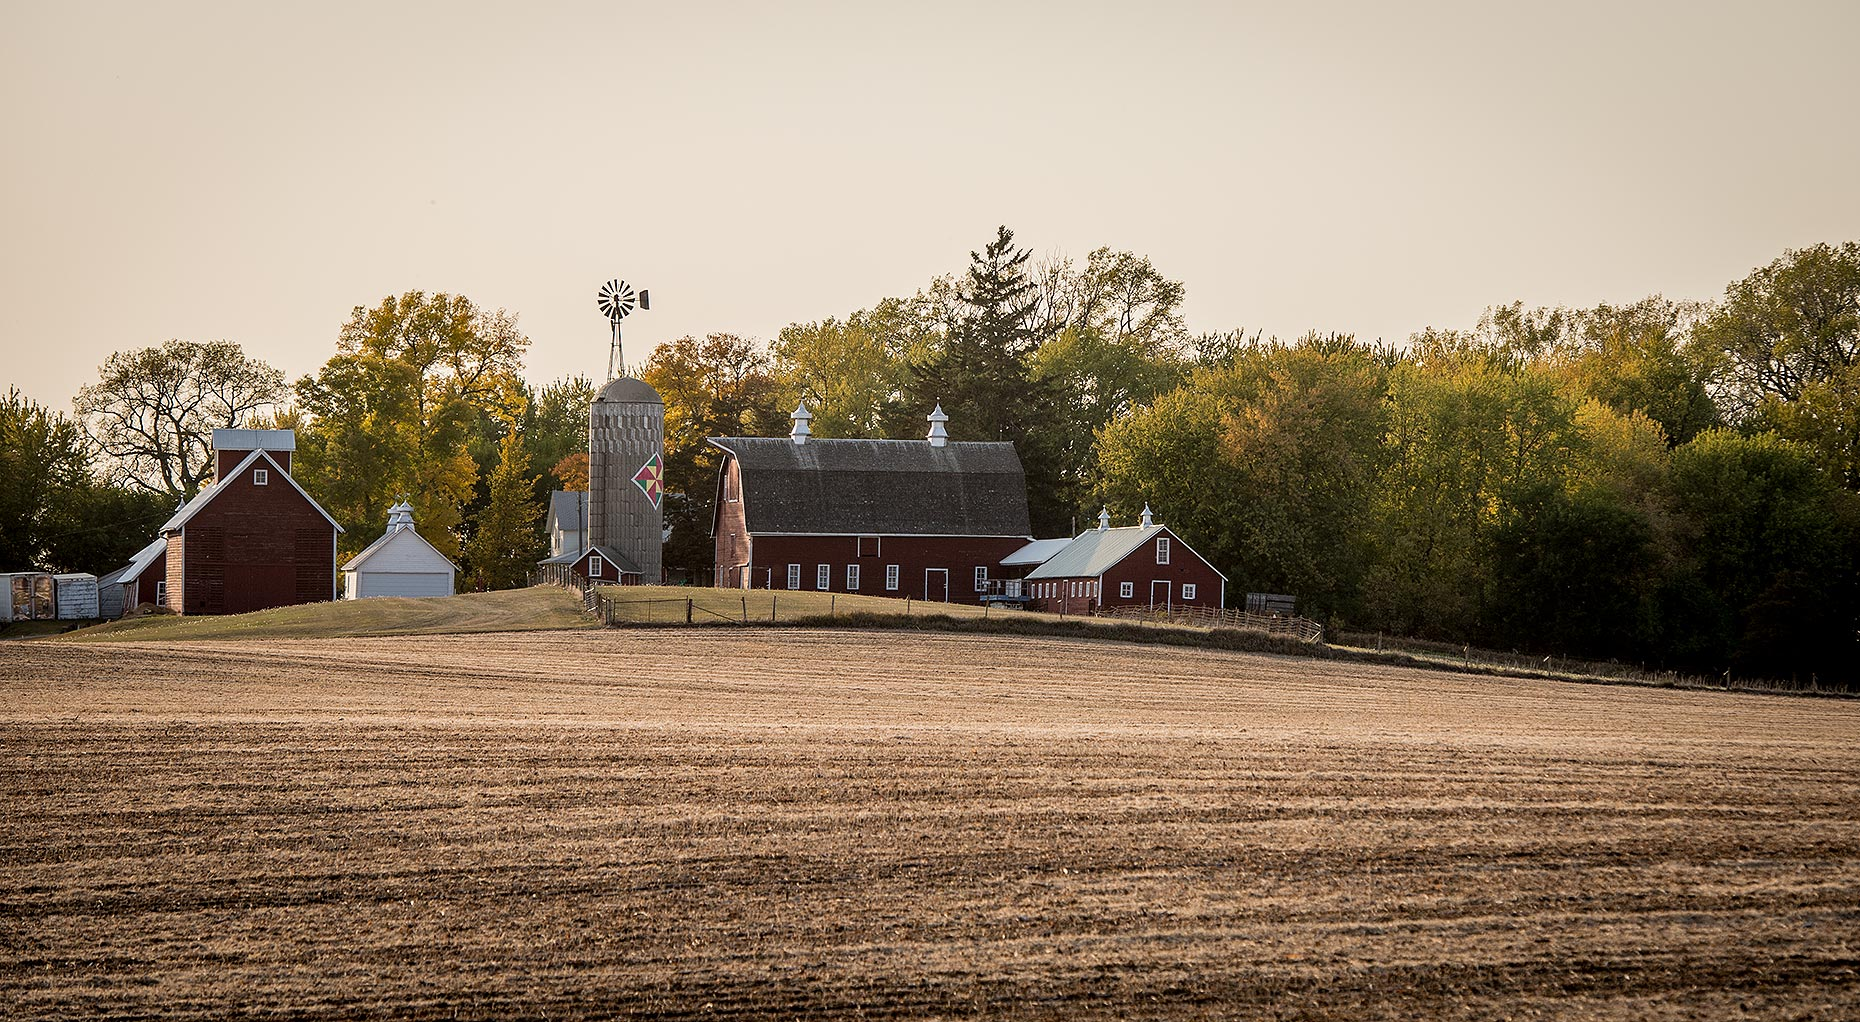 Farmstead in Midwest Photograph